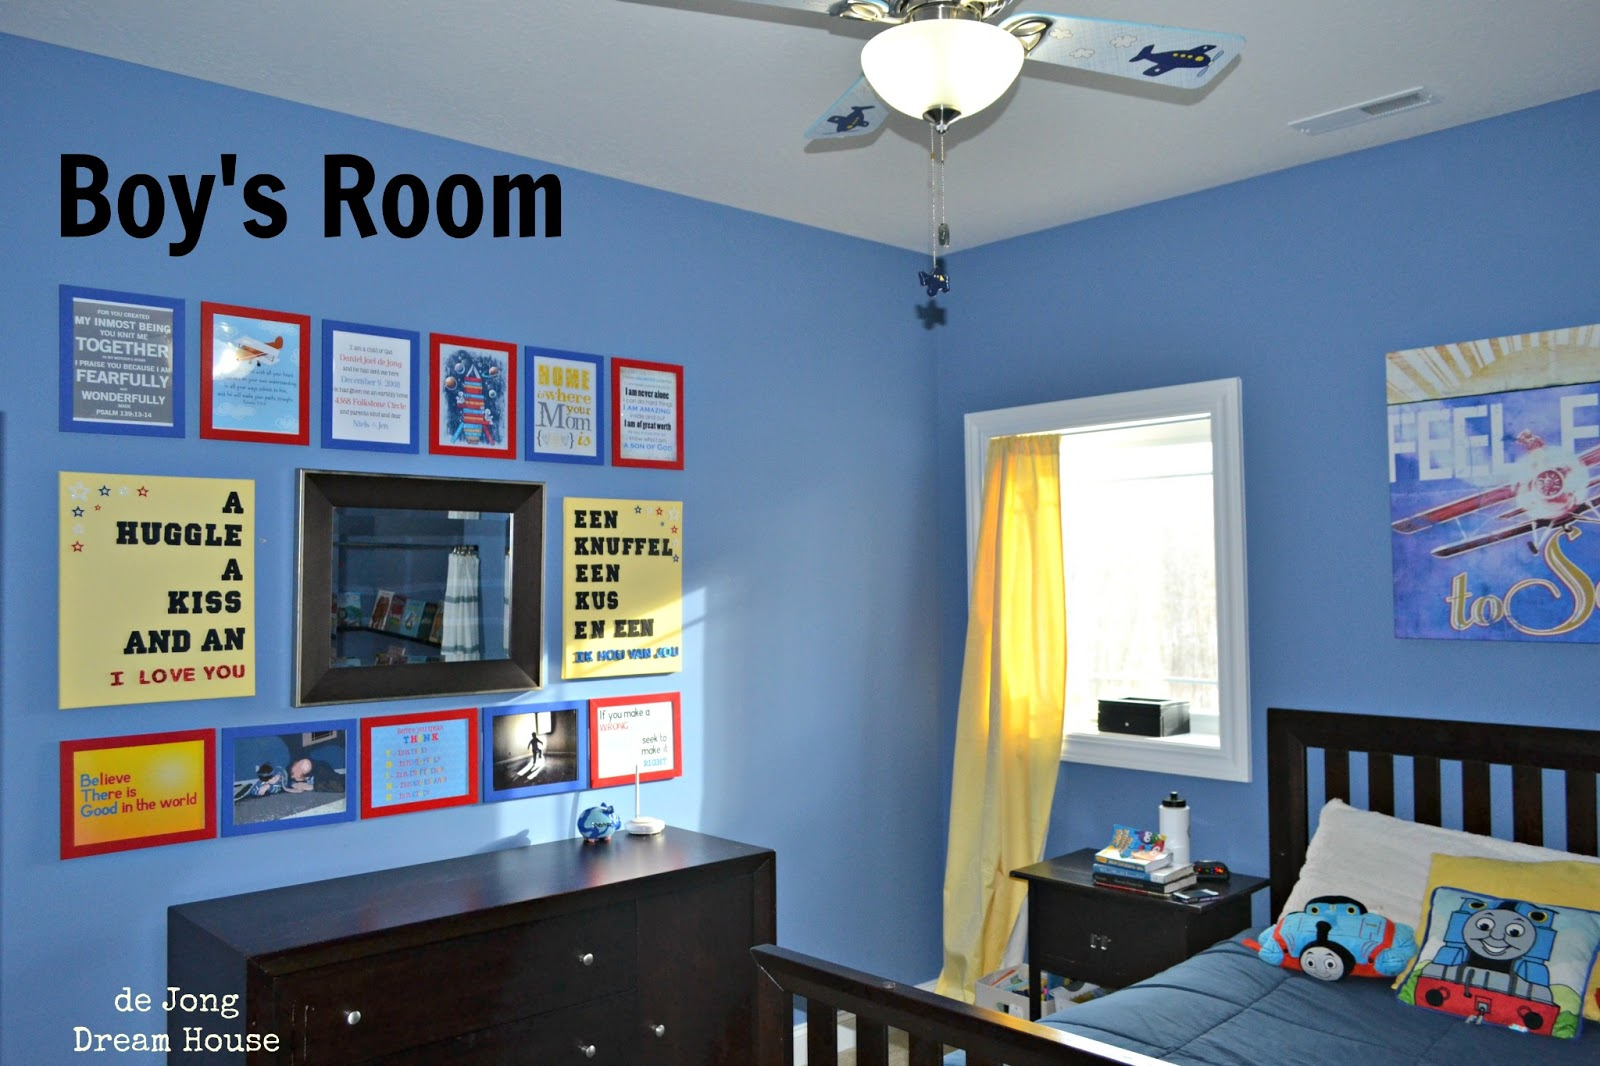 De jong dream house tour boy 39 s room for 10 year old boy bedroom ideas